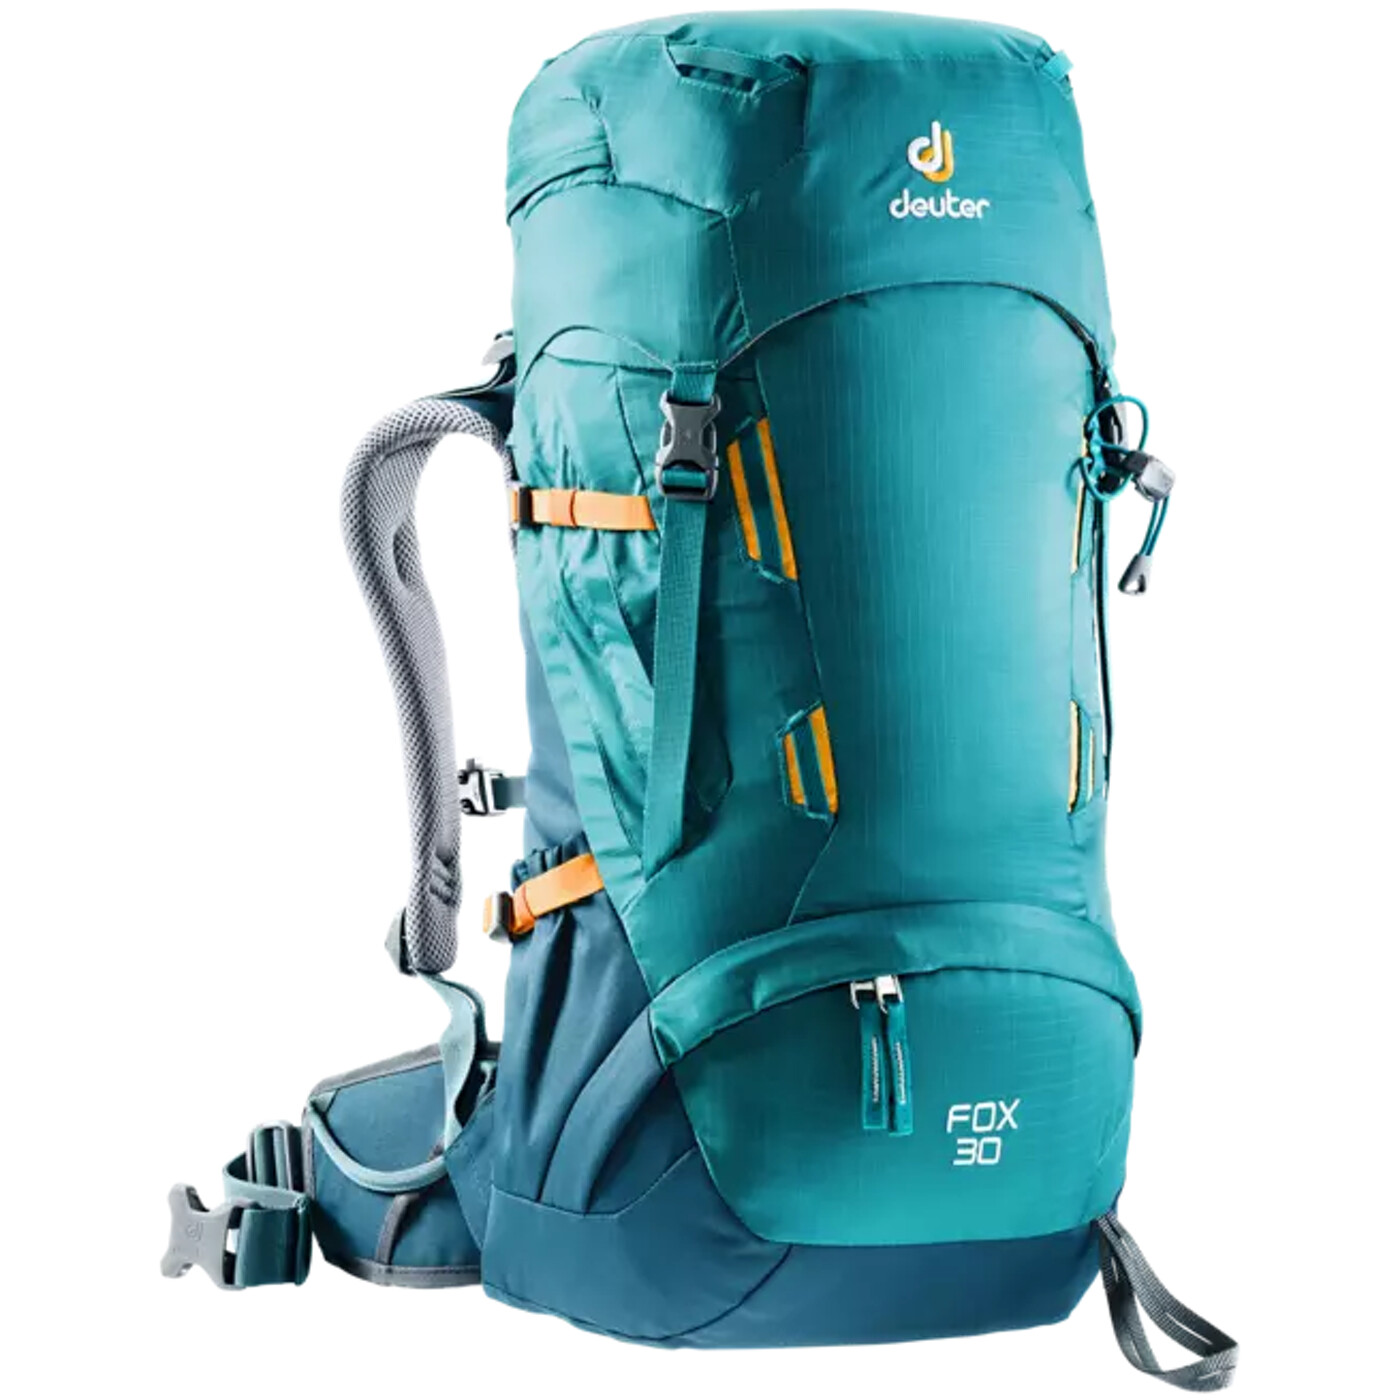 DEUTER KINDERRUCKSACK Fox 30